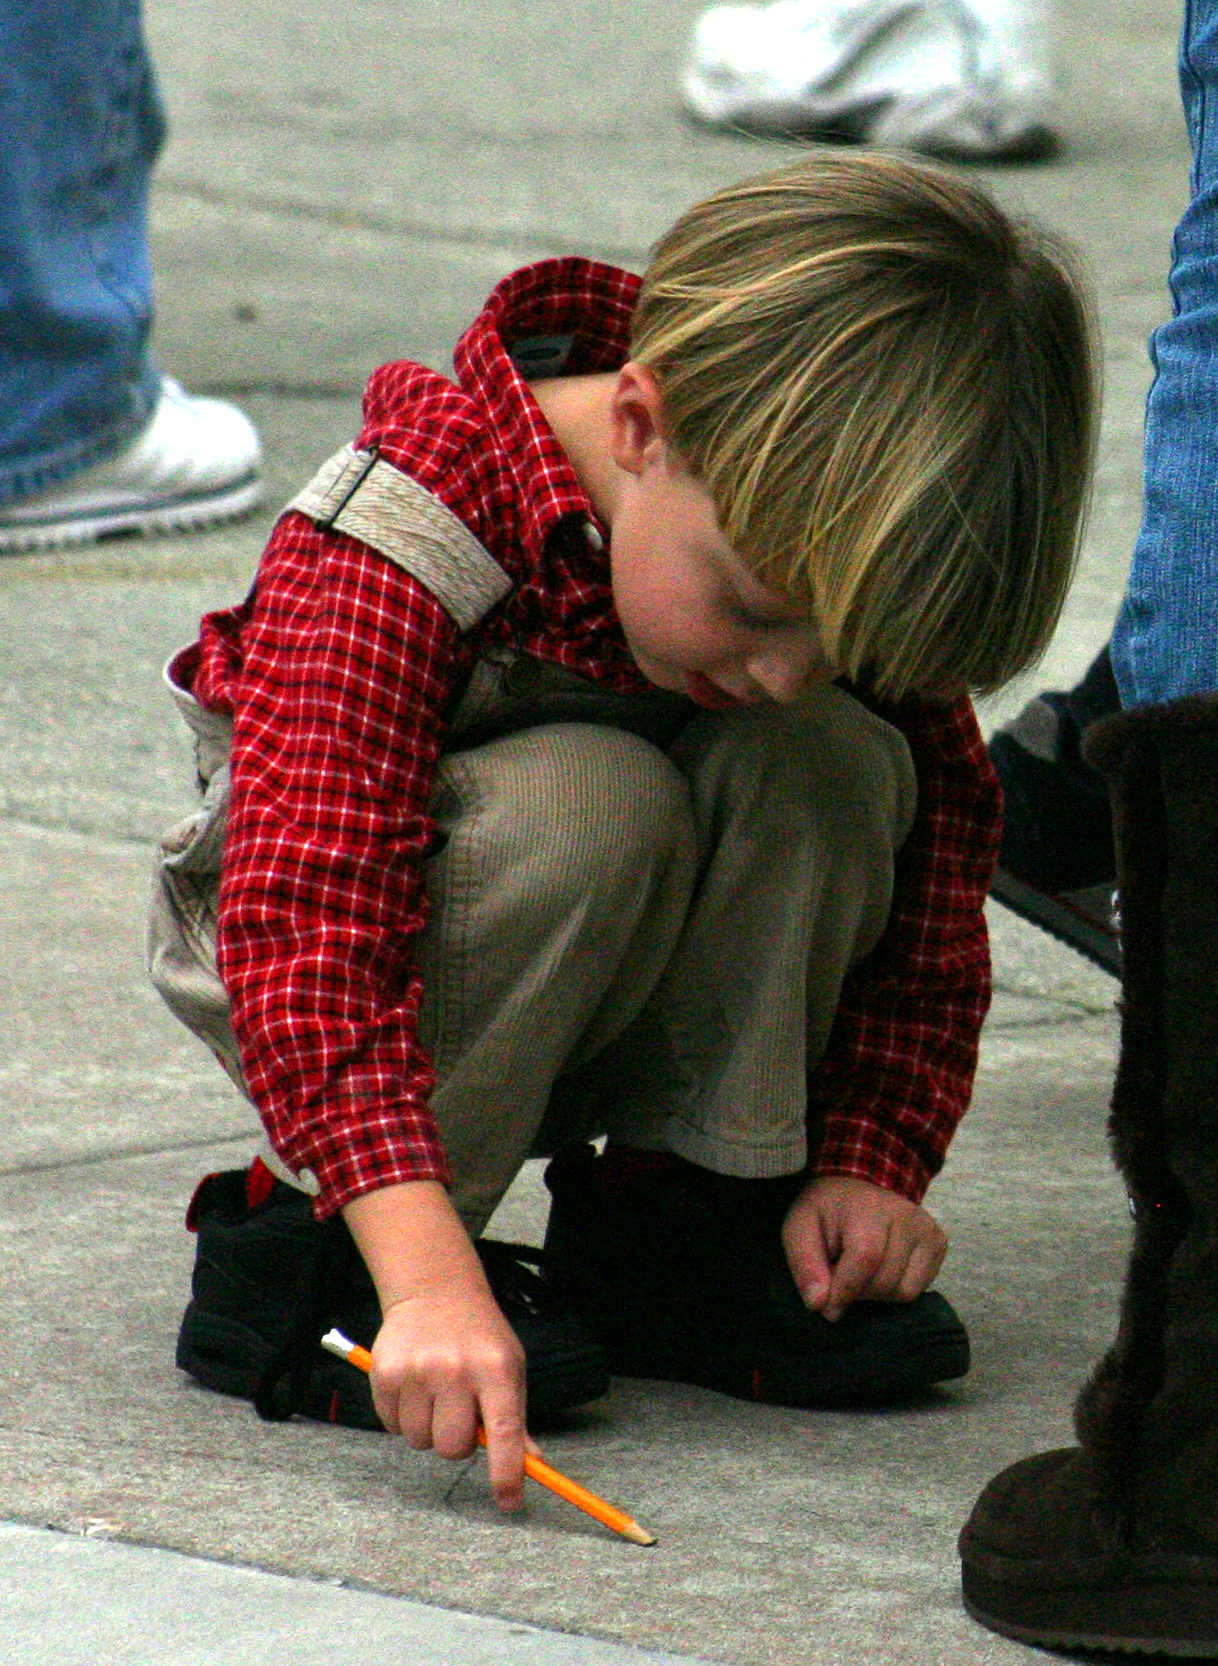 Little Boy Drawing on Ground